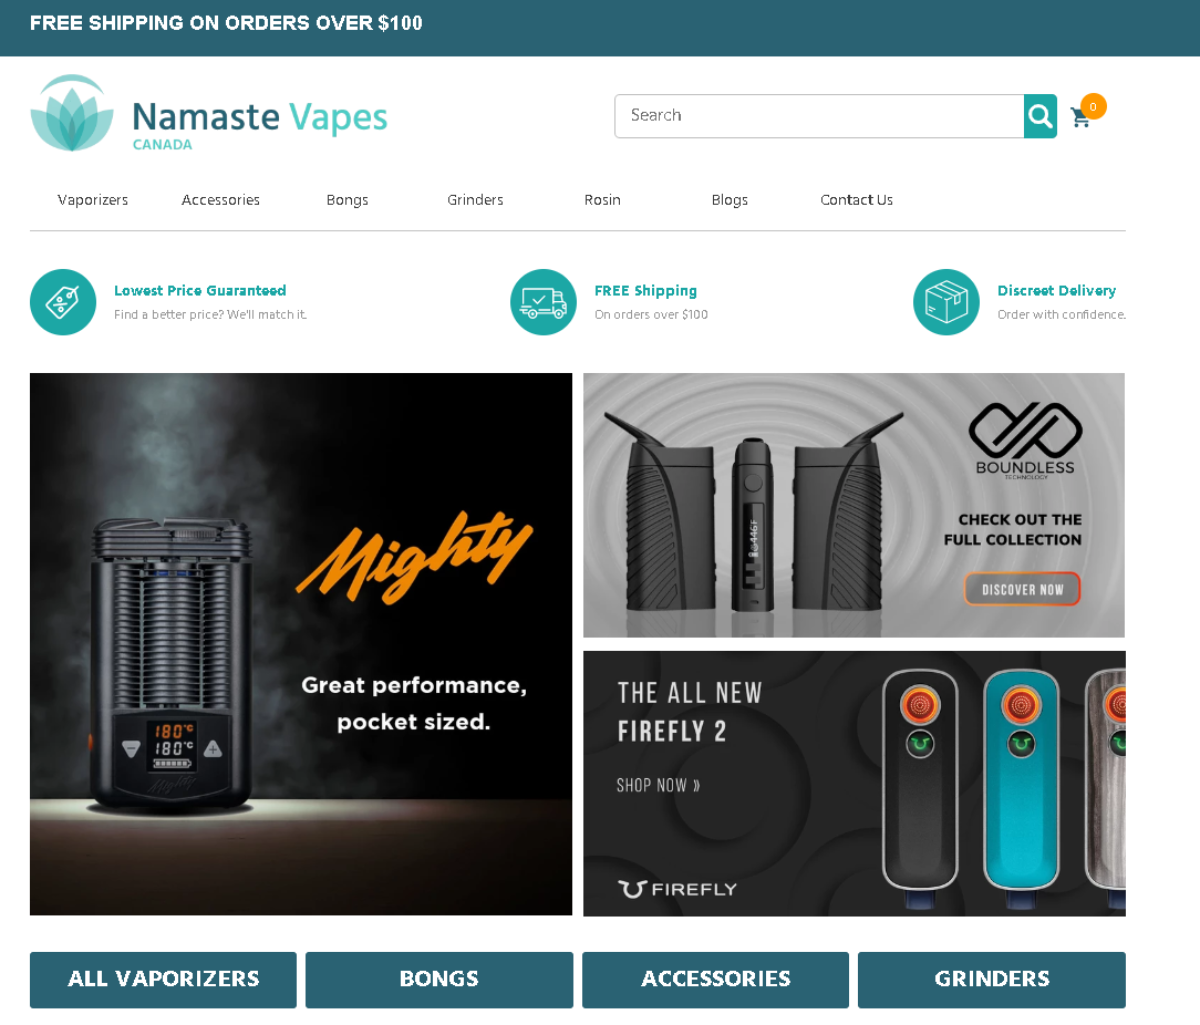 Screenshot of the Namaste Vapes home page showing five main categories for weed affiliates to promote. Vaporizers, accessories, bongs, grinders and rosin.